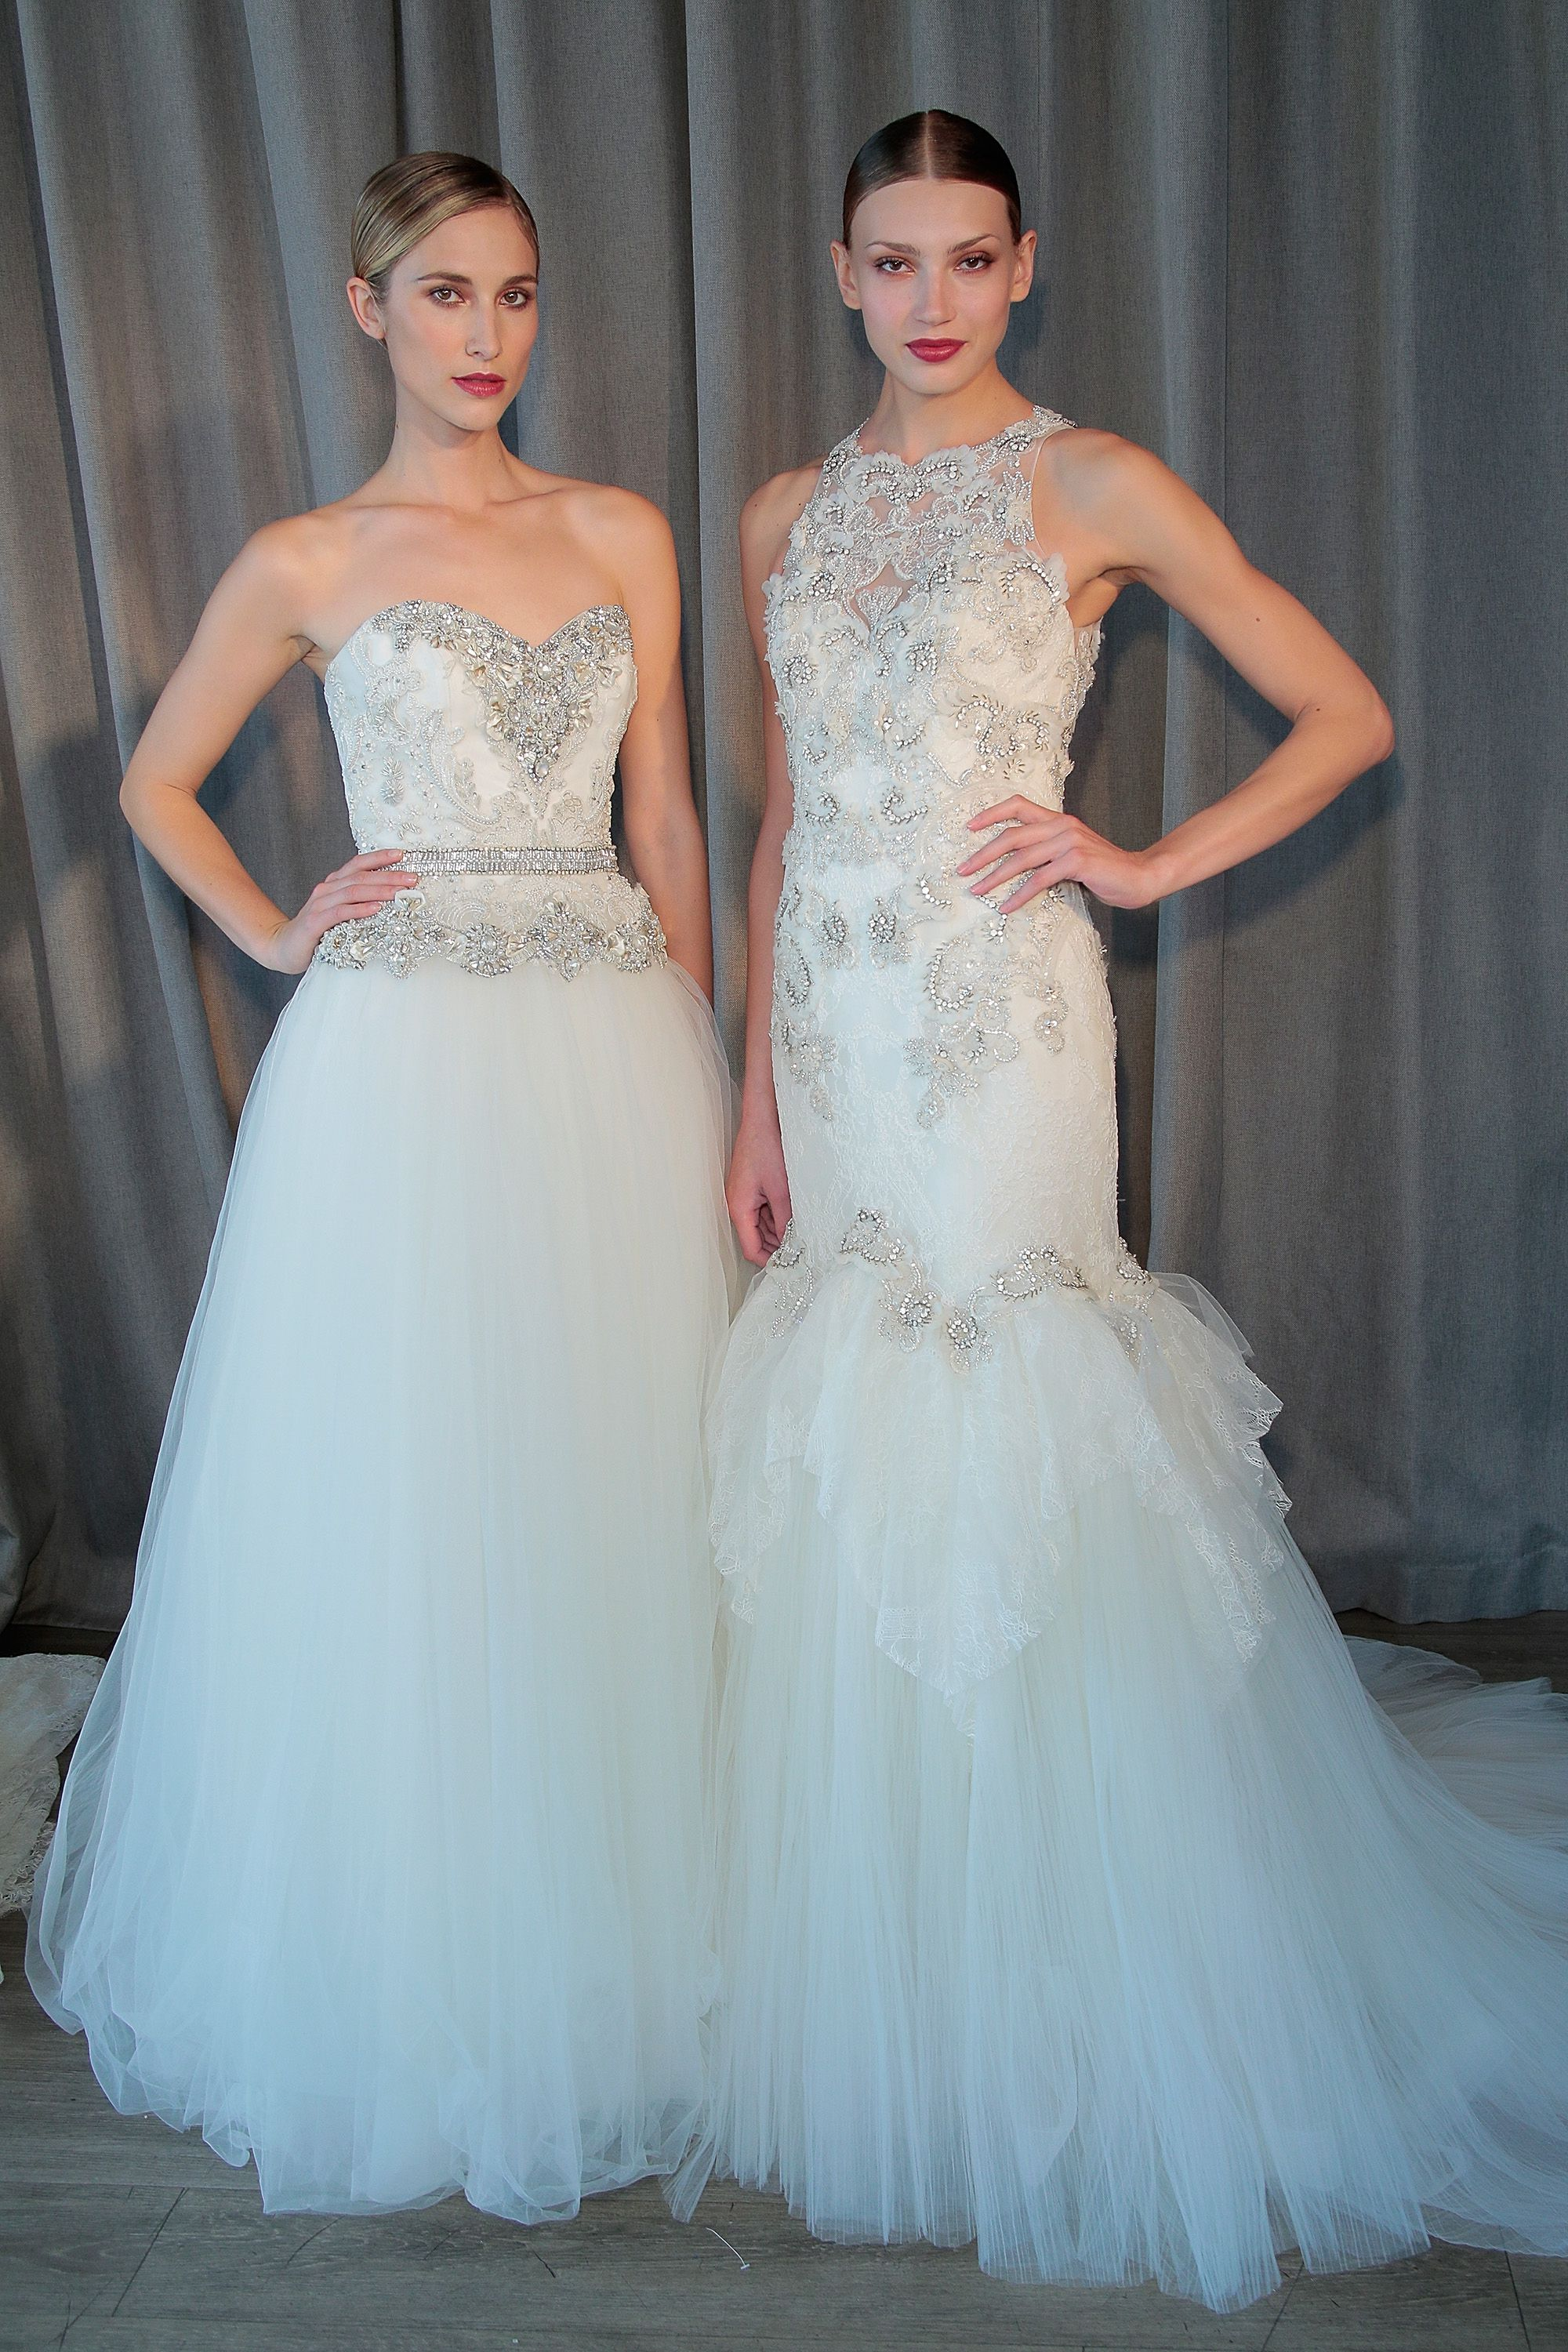 Awesome Vestidos De Novia De Diseñadores Gallery - Wedding Ideas ...